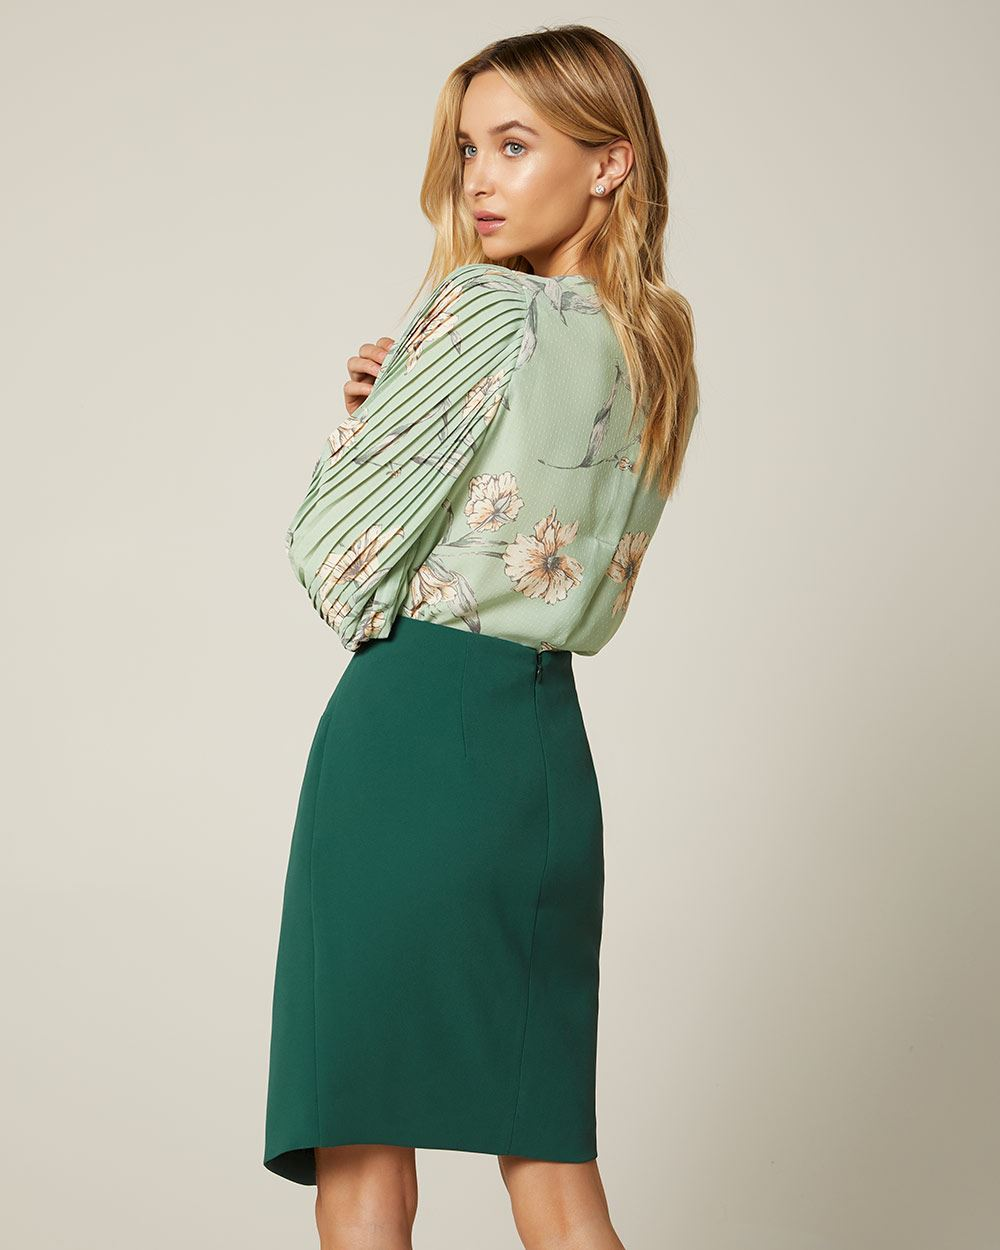 Knotted high-waist pencil skirt